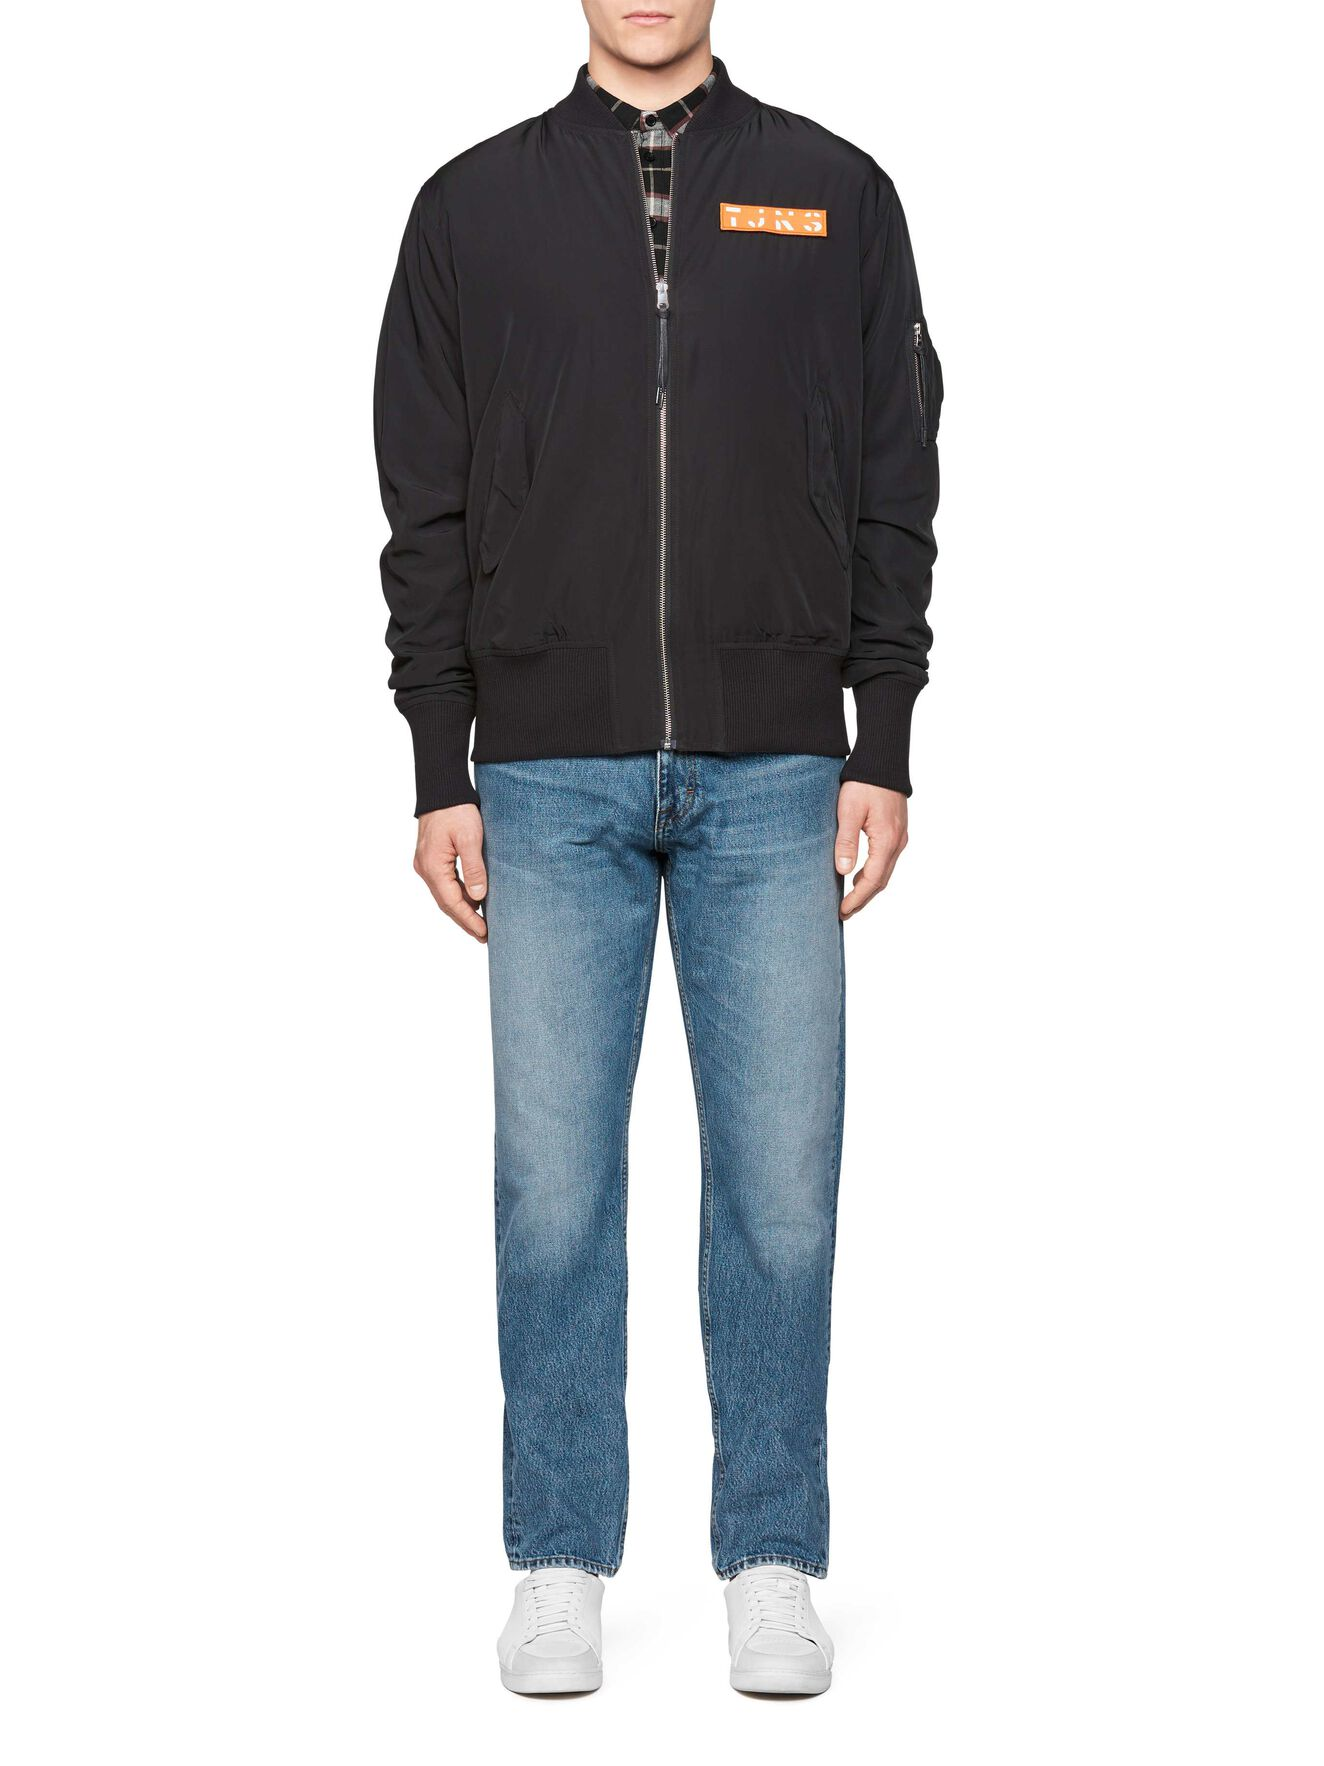 Burst Jacket in Black from Tiger of Sweden